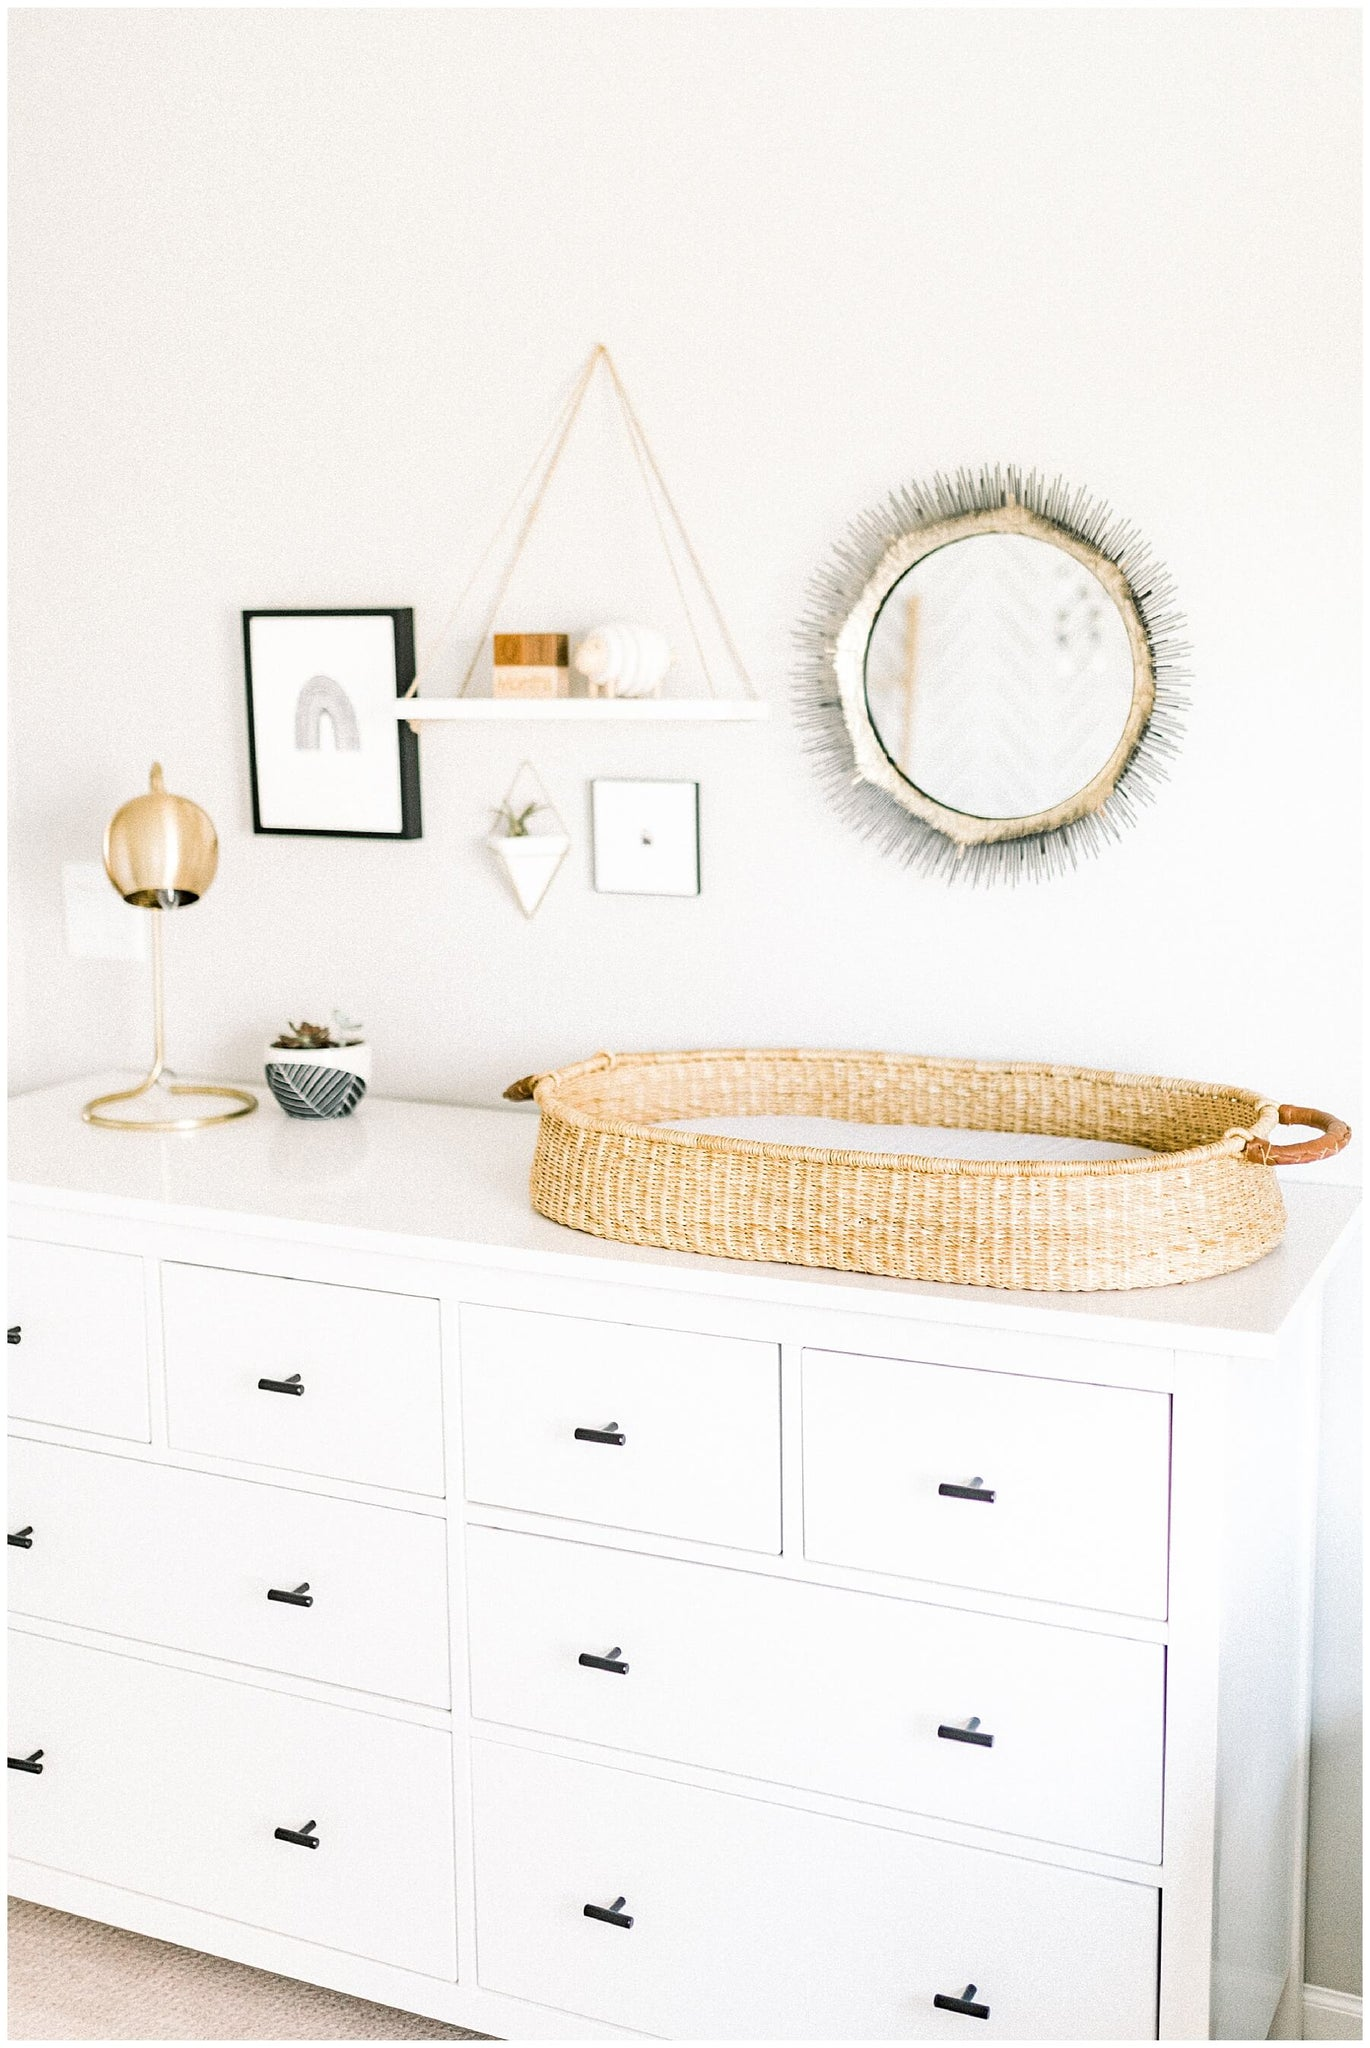 White nursery dresser styled with mid mod interior decor and scandinavian style decor